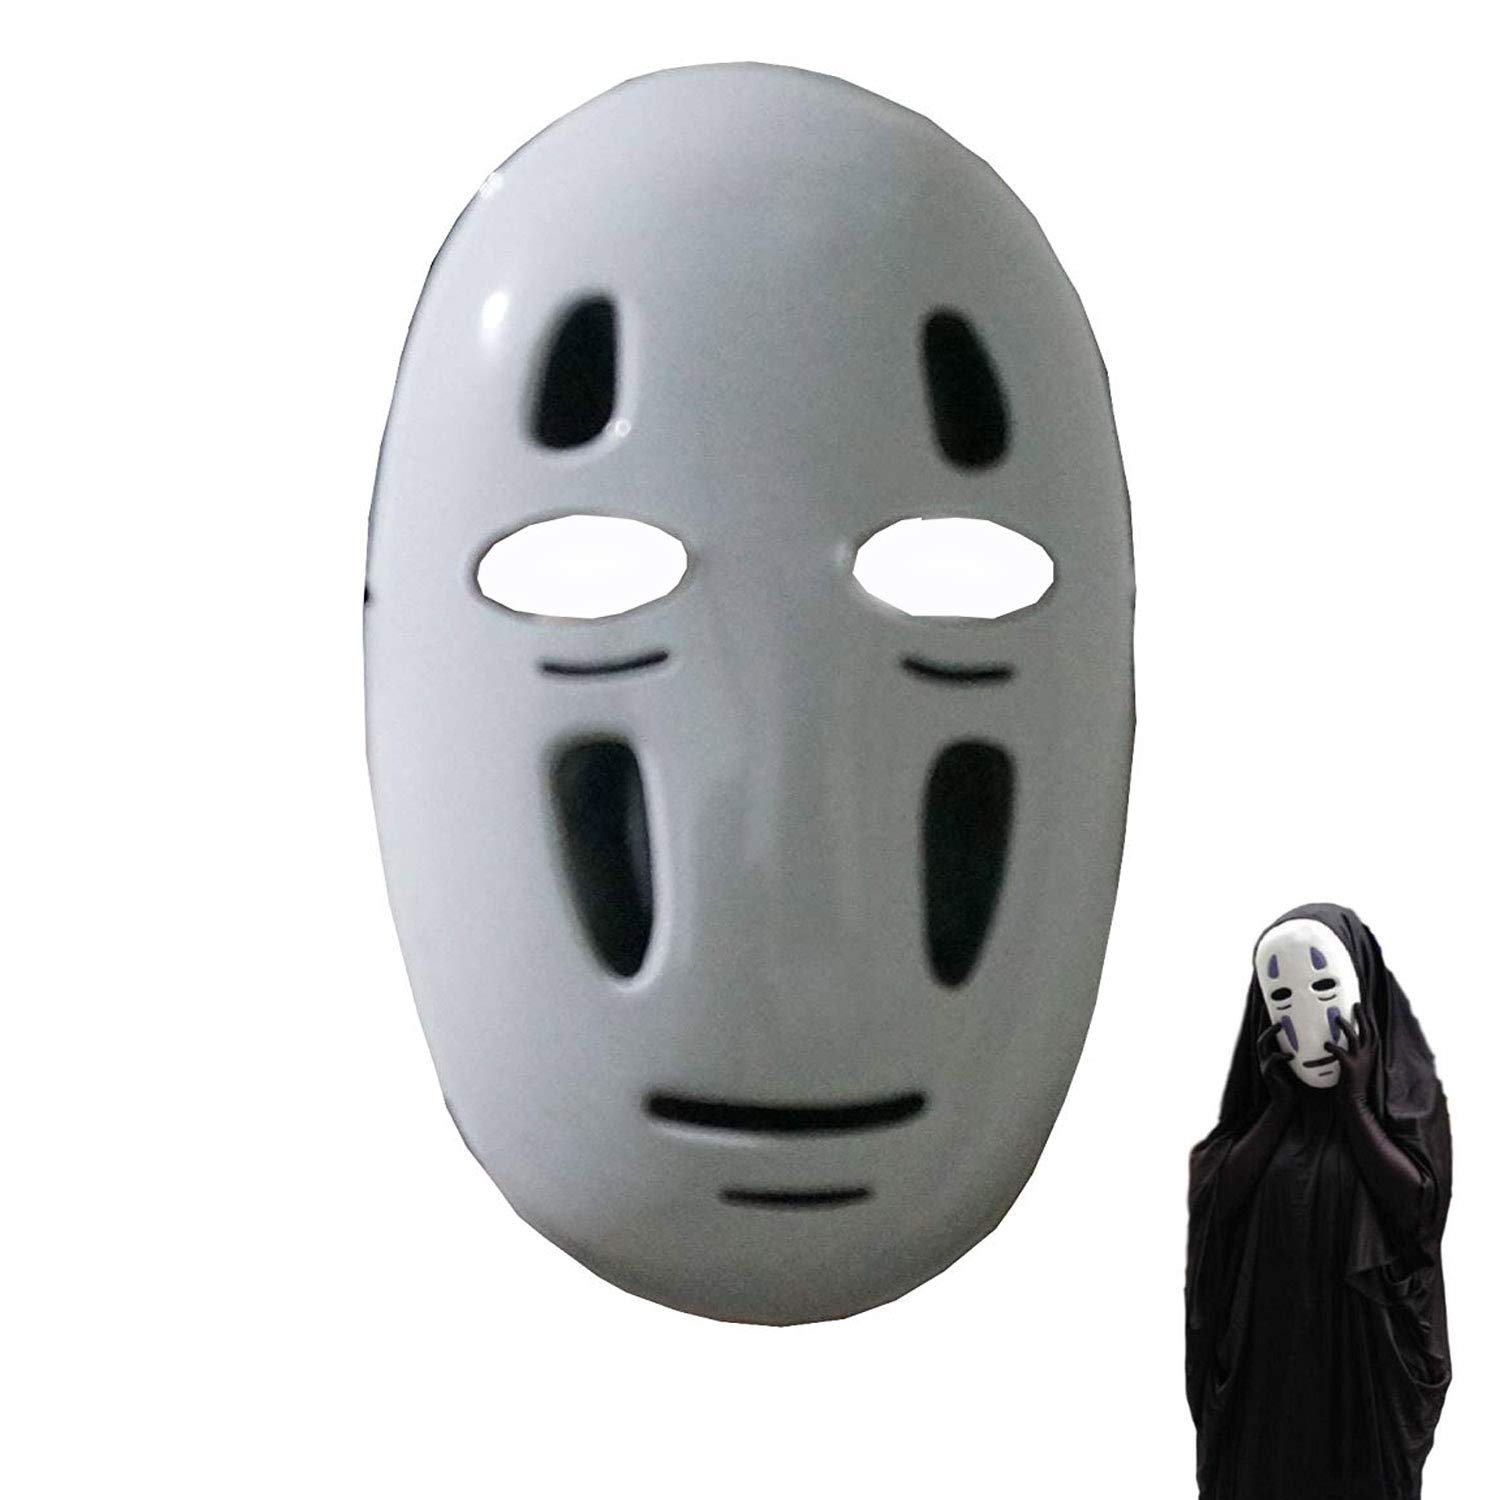 Buy Idoxe Halloween Mask Spirited Away No Face Faceless Ghibli Mask Cosplay Anime Costume White Black Online At Low Prices In India Amazon In